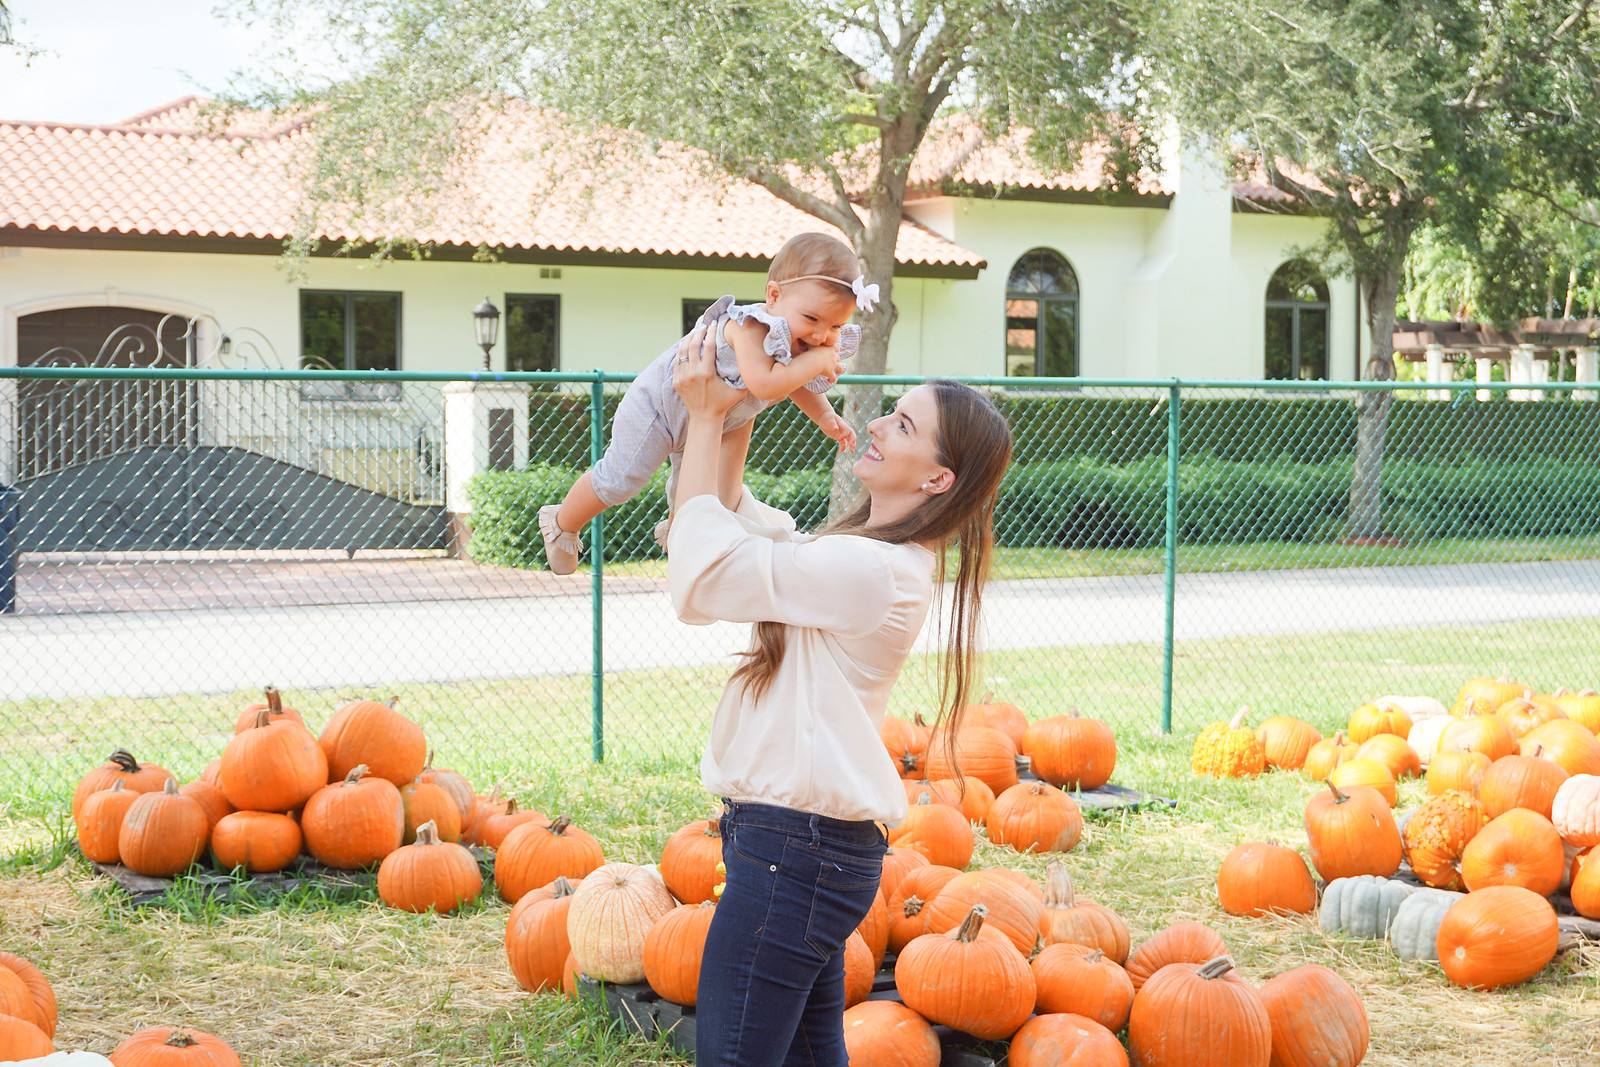 pumpkin patch photoshoot ideas 4